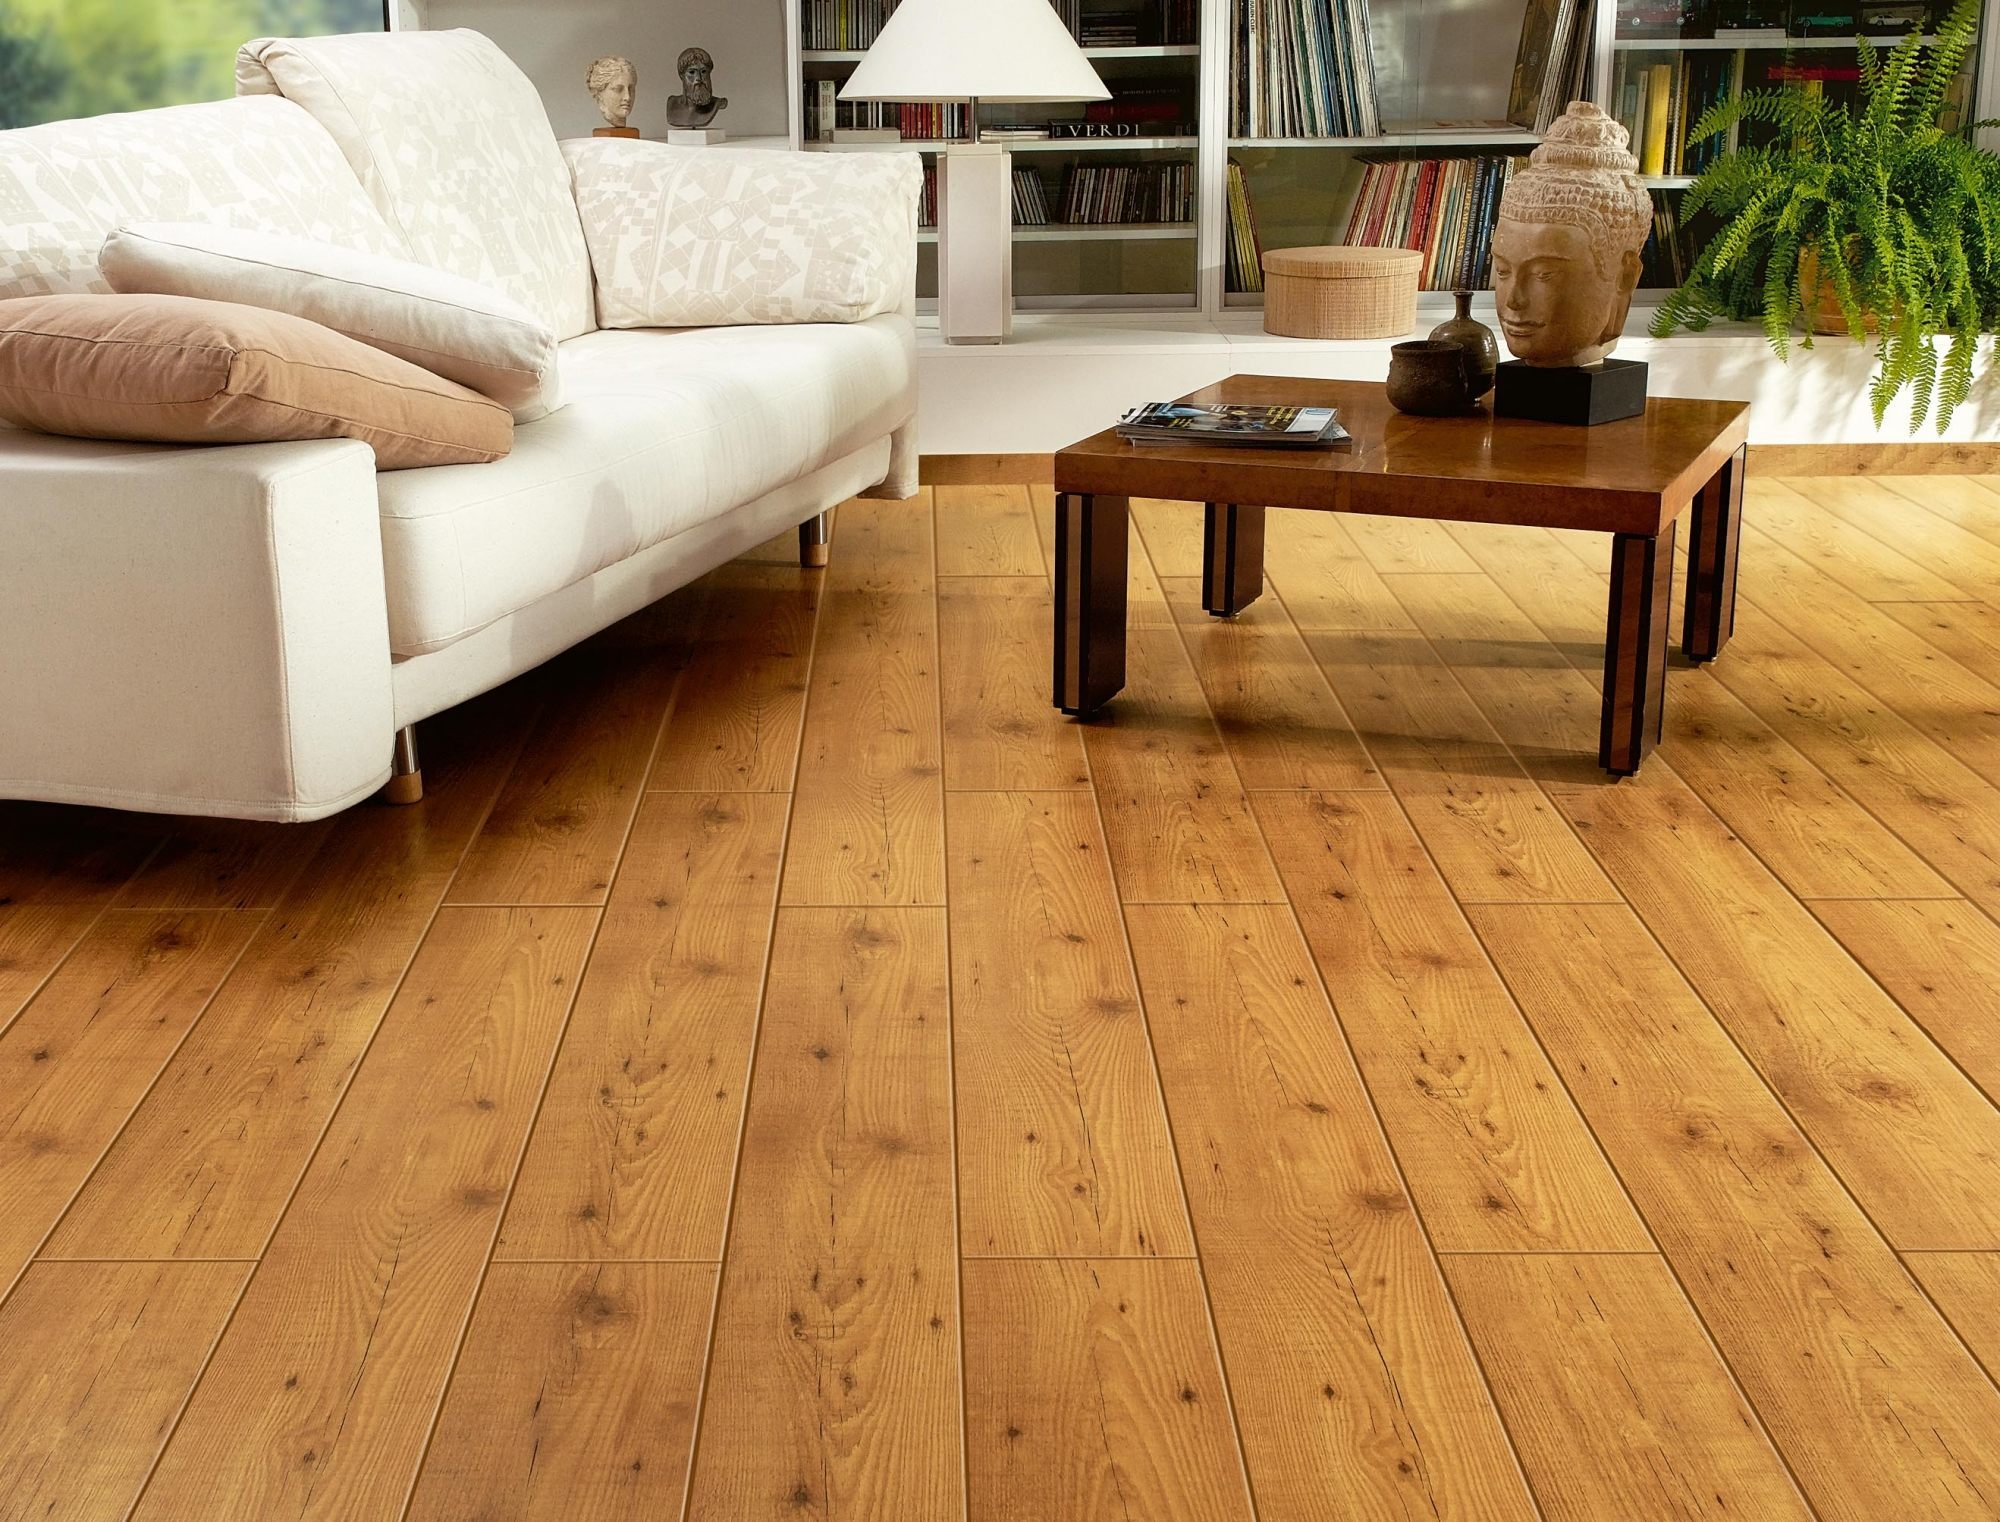 Planning For Wooden Flooring? Learn About Different Types Of Available Flooring Options